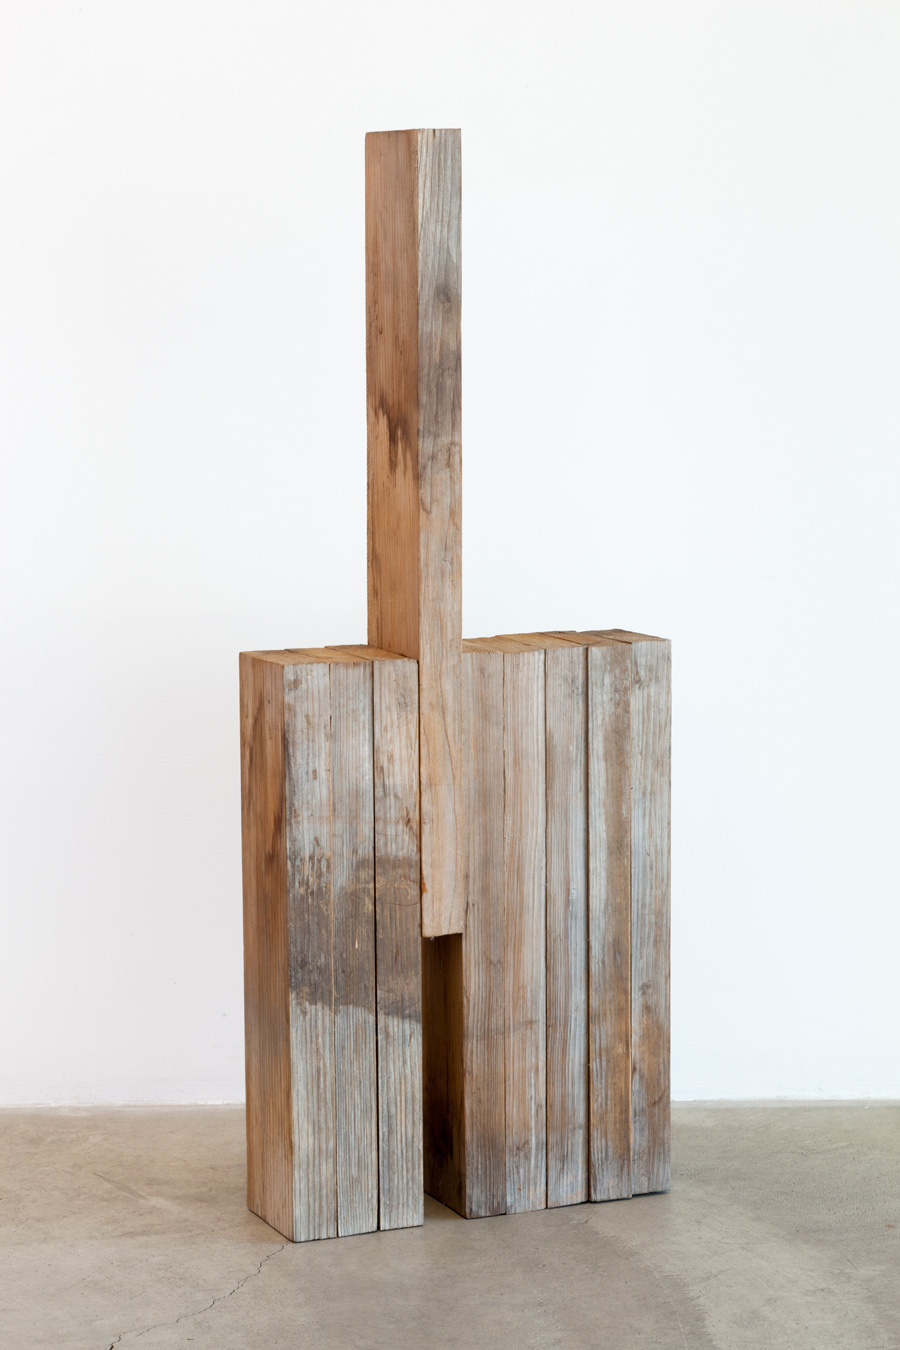 Supported Space , 1974 集支間 ( Shūshikan ) Wood 29 3/4 x 11 5/8 3 15/16 inches  75.5 x 29.5 x 10 cm